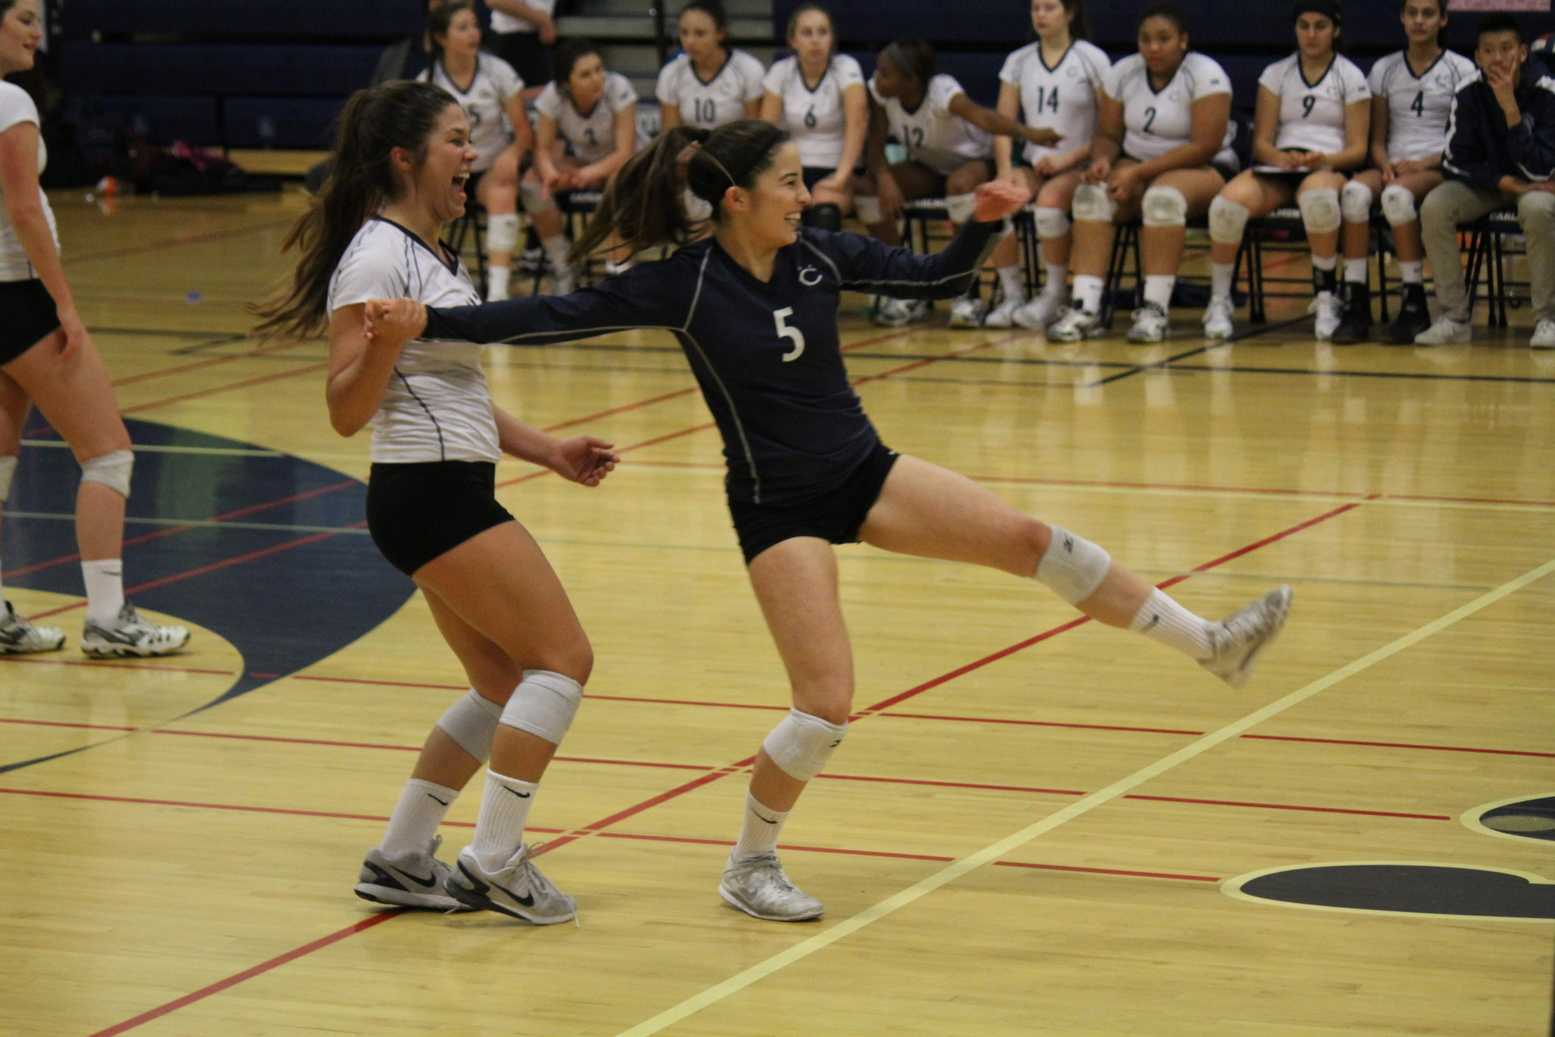 Seniors Erin Alonso and Elena Mateus celebrate their victory against the Sequoia Cherokees on senior night.